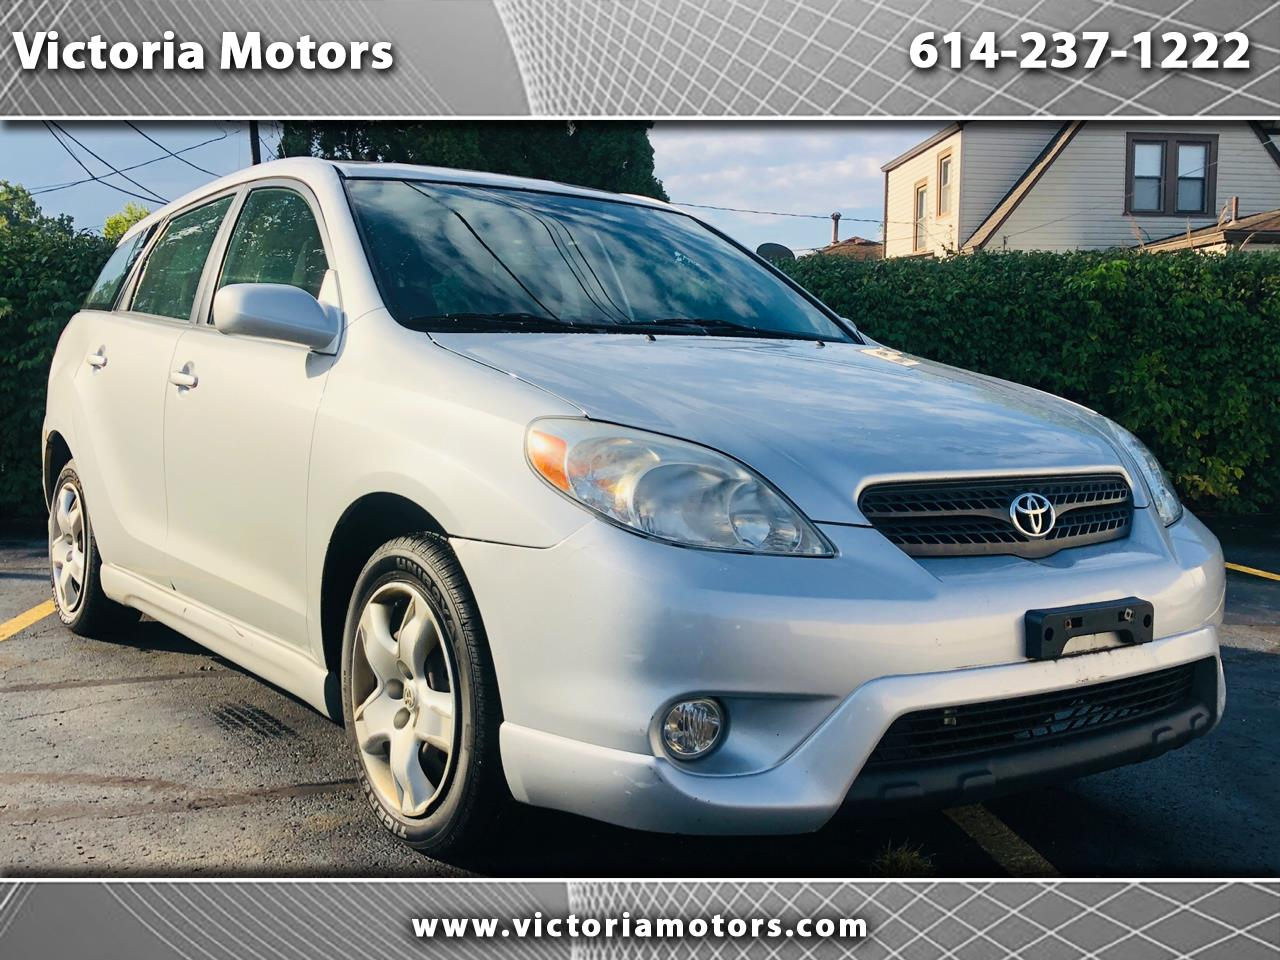 2007 Toyota Matrix 5dr Wgn Manual STD (Natl)